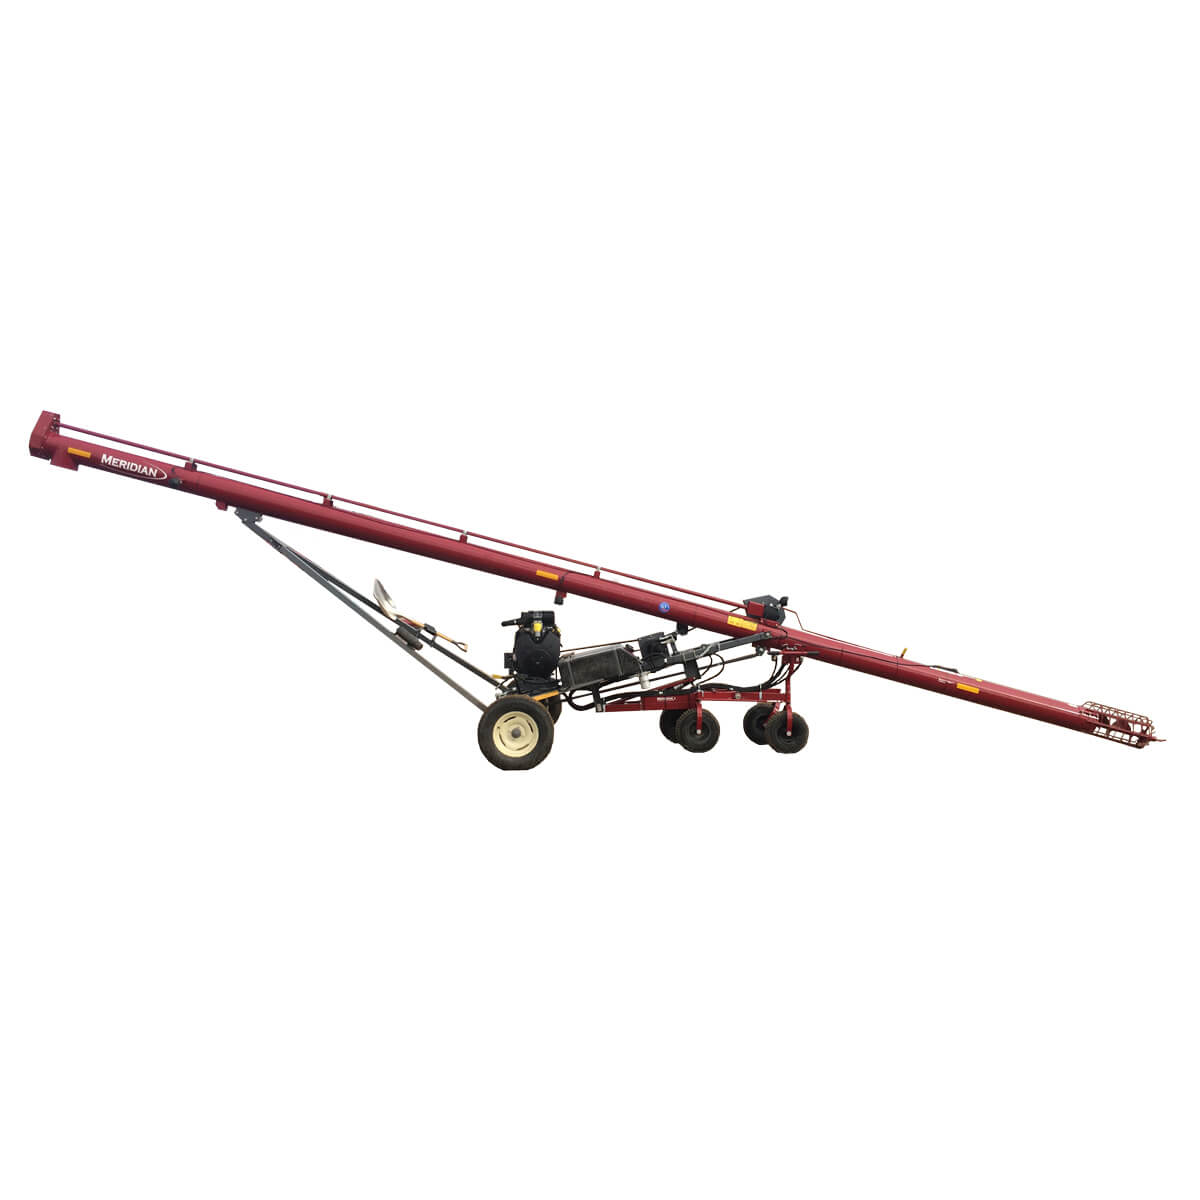 Meridian 8-39 Heavy Duty Conventional Auger